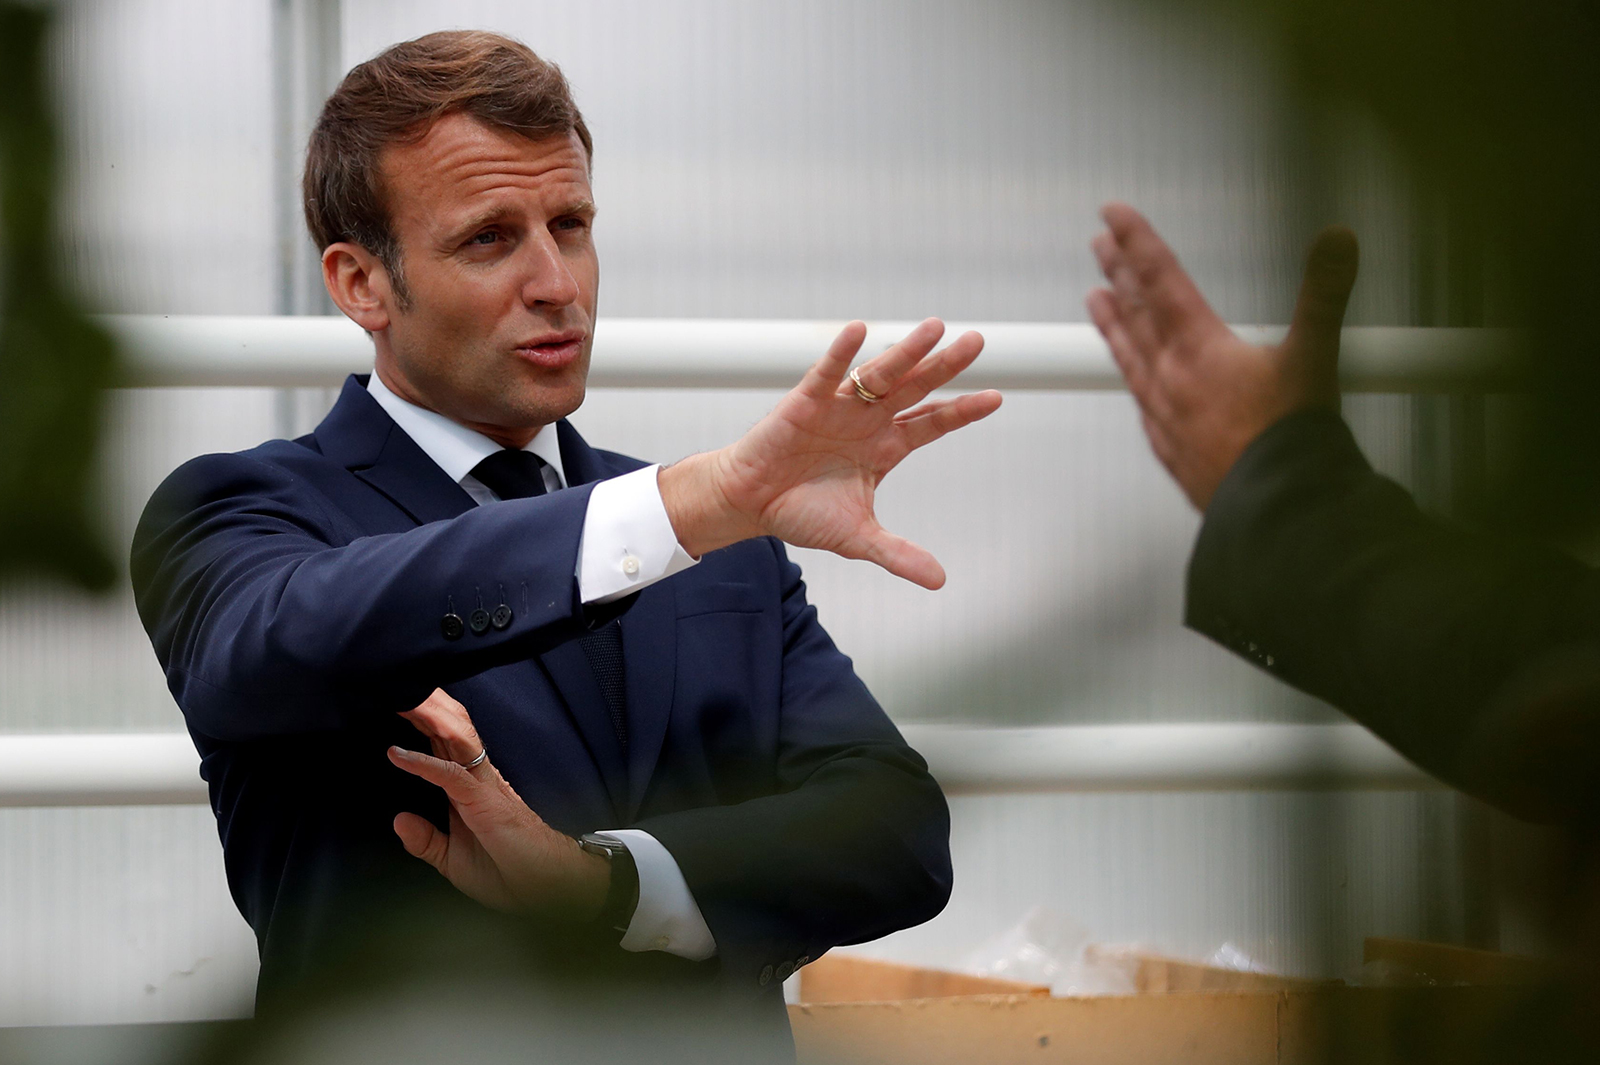 French President Emmanuel Macron talks to farmers and workers during a visit to a greenhouse at the Roue farm in Cleder, western France on April 22.